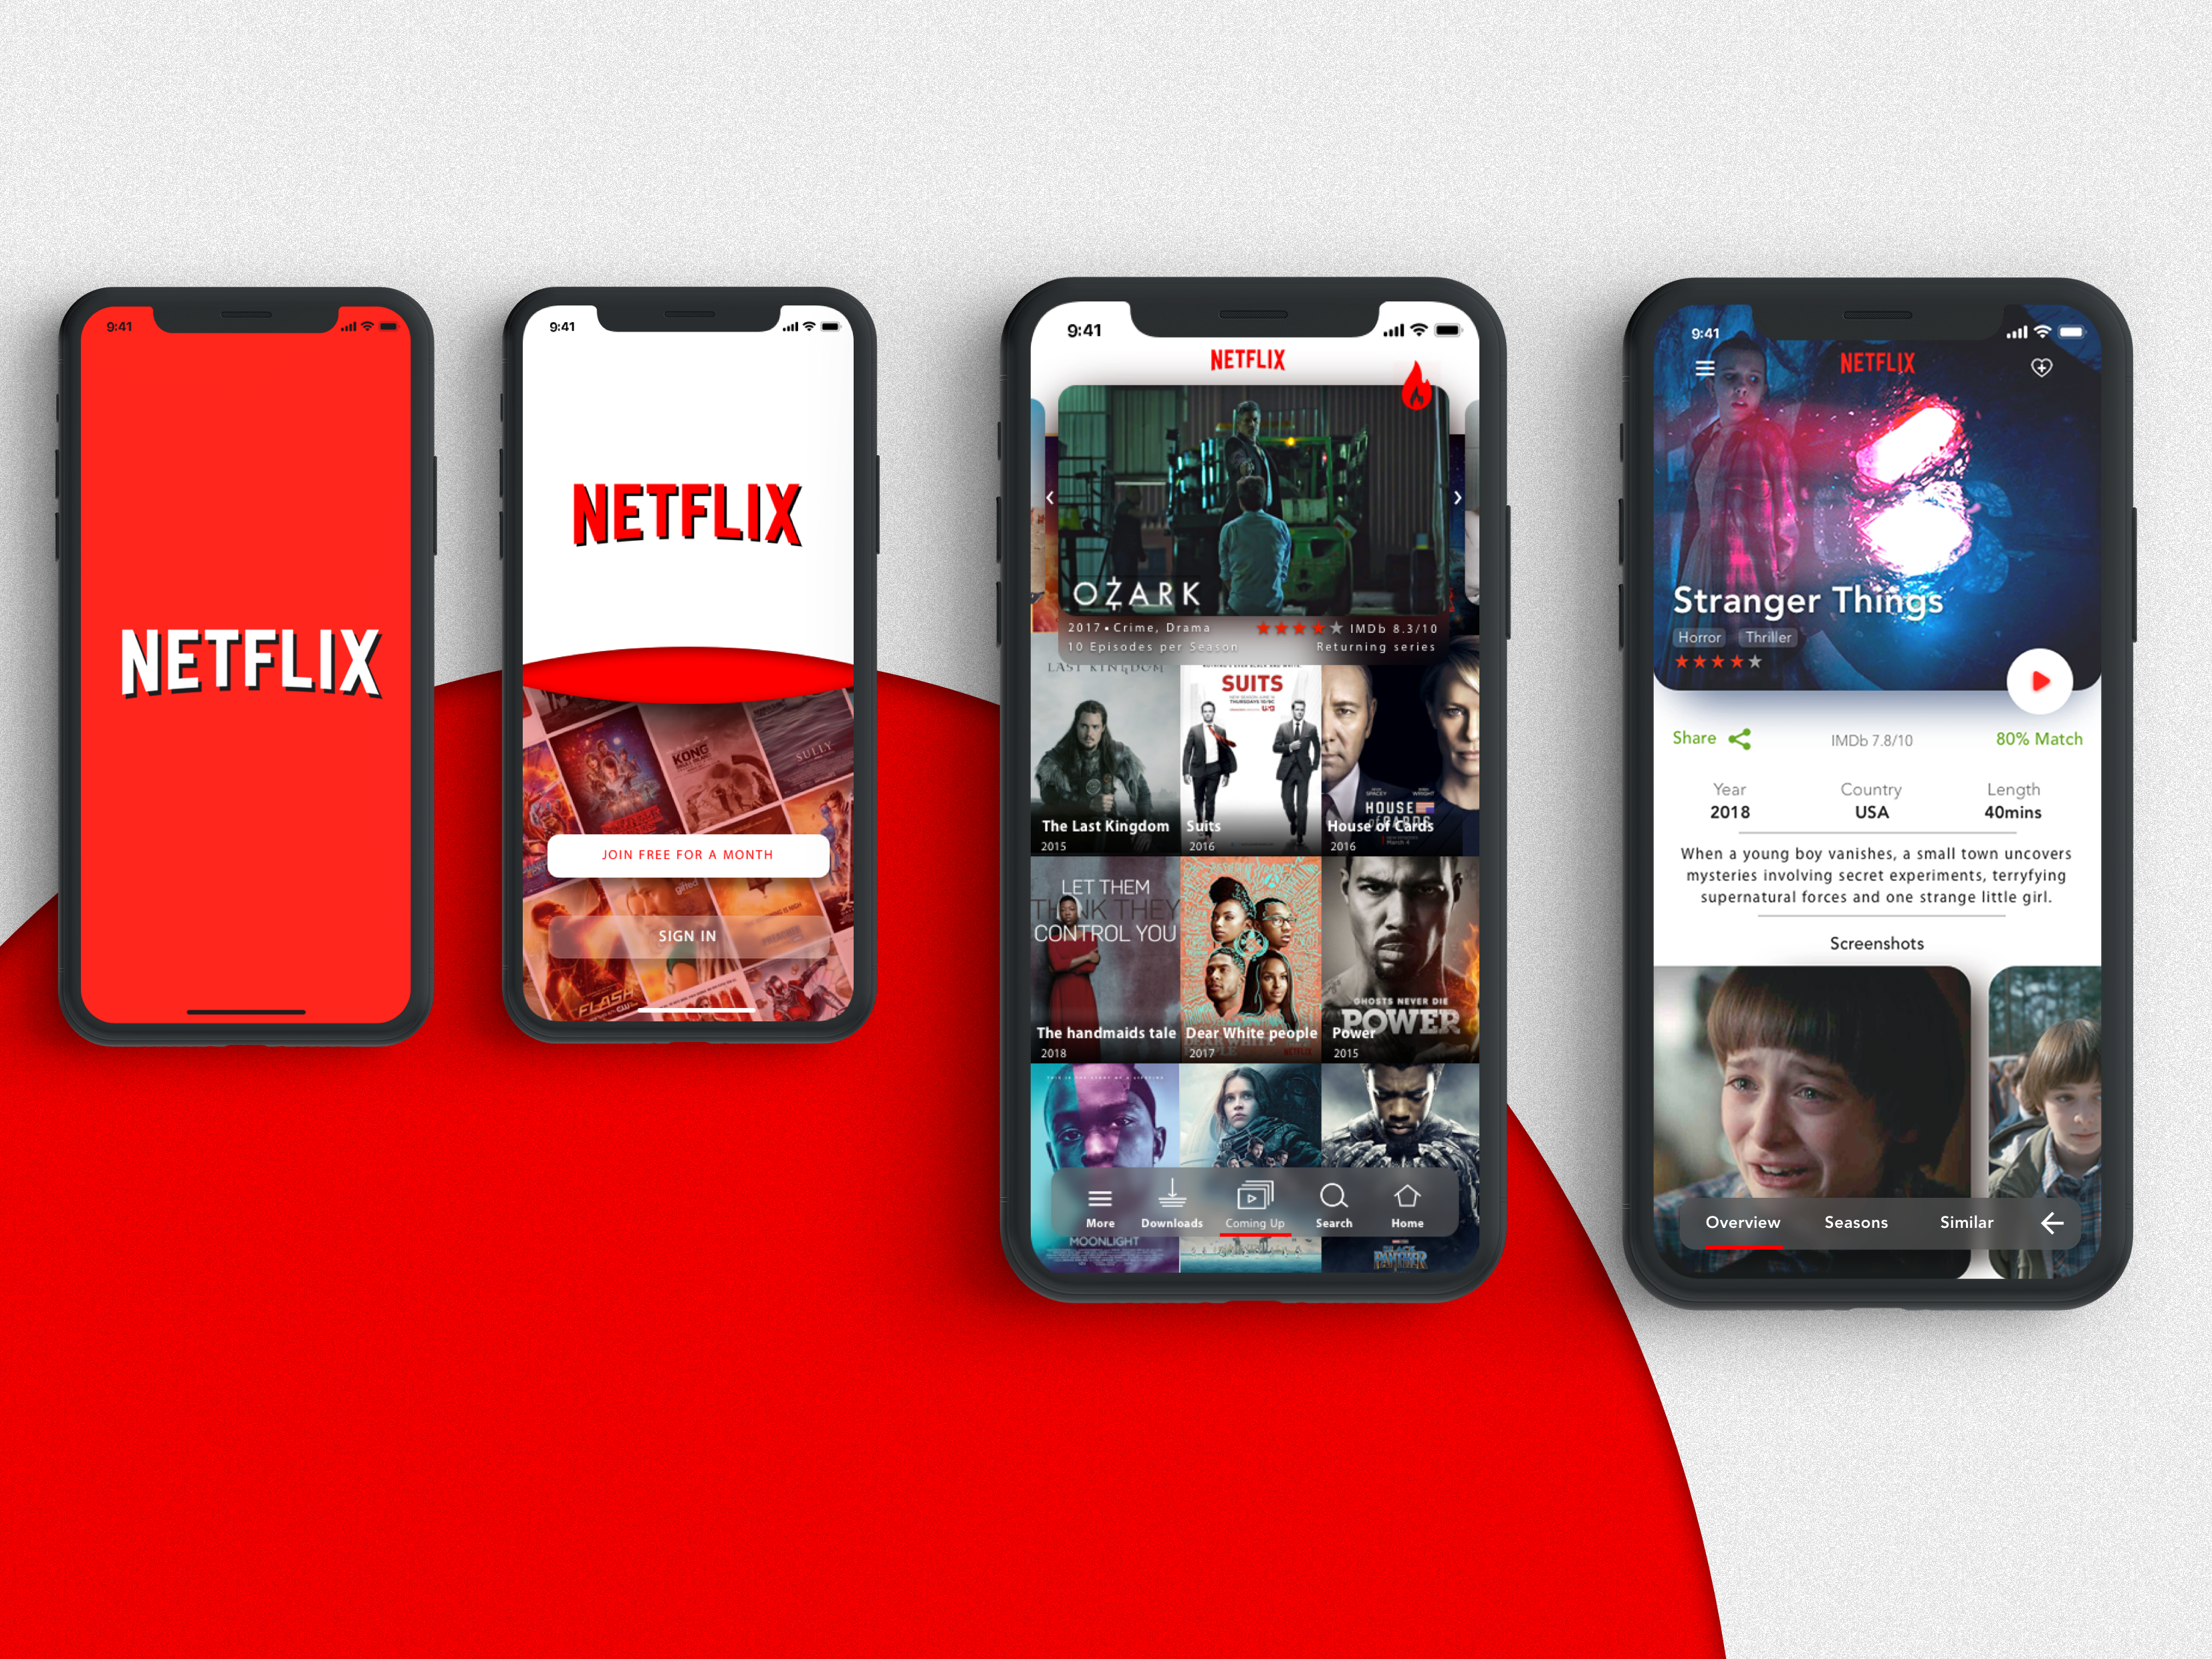 Netflix iOS Mobile Redesign. by O'mara Marvin | Android app design, Netflix  app, Android design